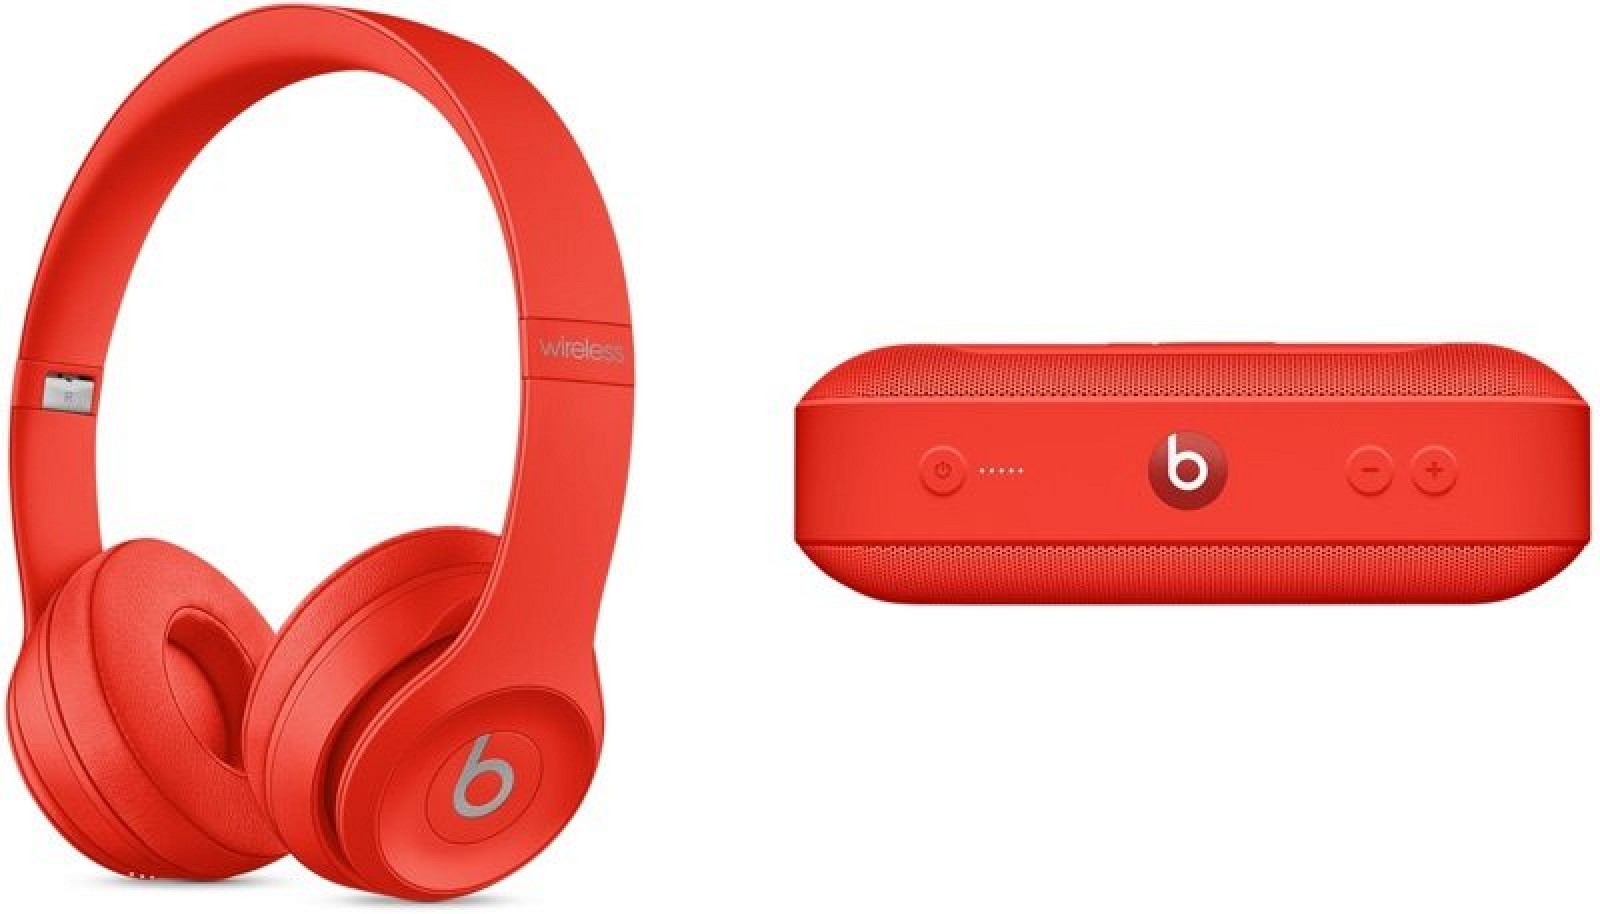 Apple Debuts (PRODUCT)RED Solo3 Wireless Headphones and Beats Pill+ Speaker 2f2ac640a5ea